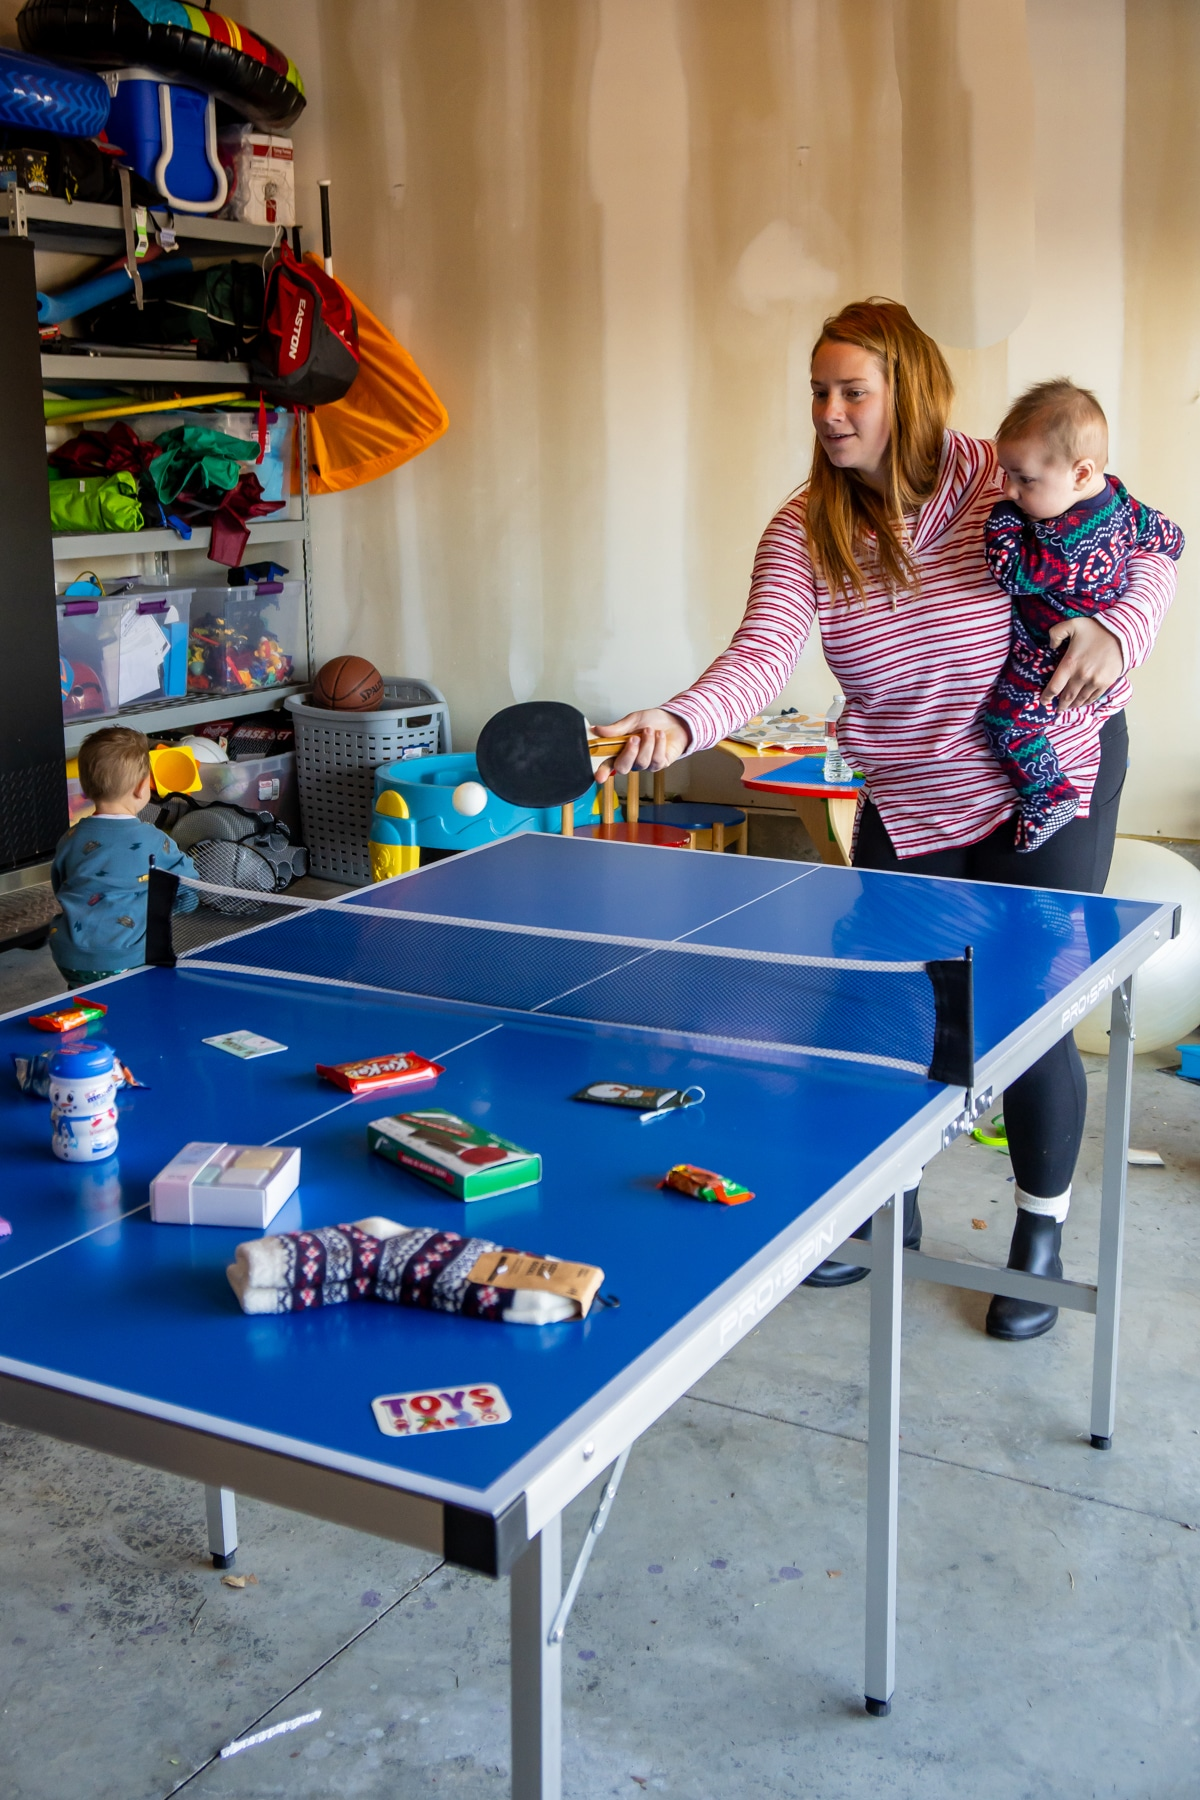 Woman hitting a ping pong on a table with prizes